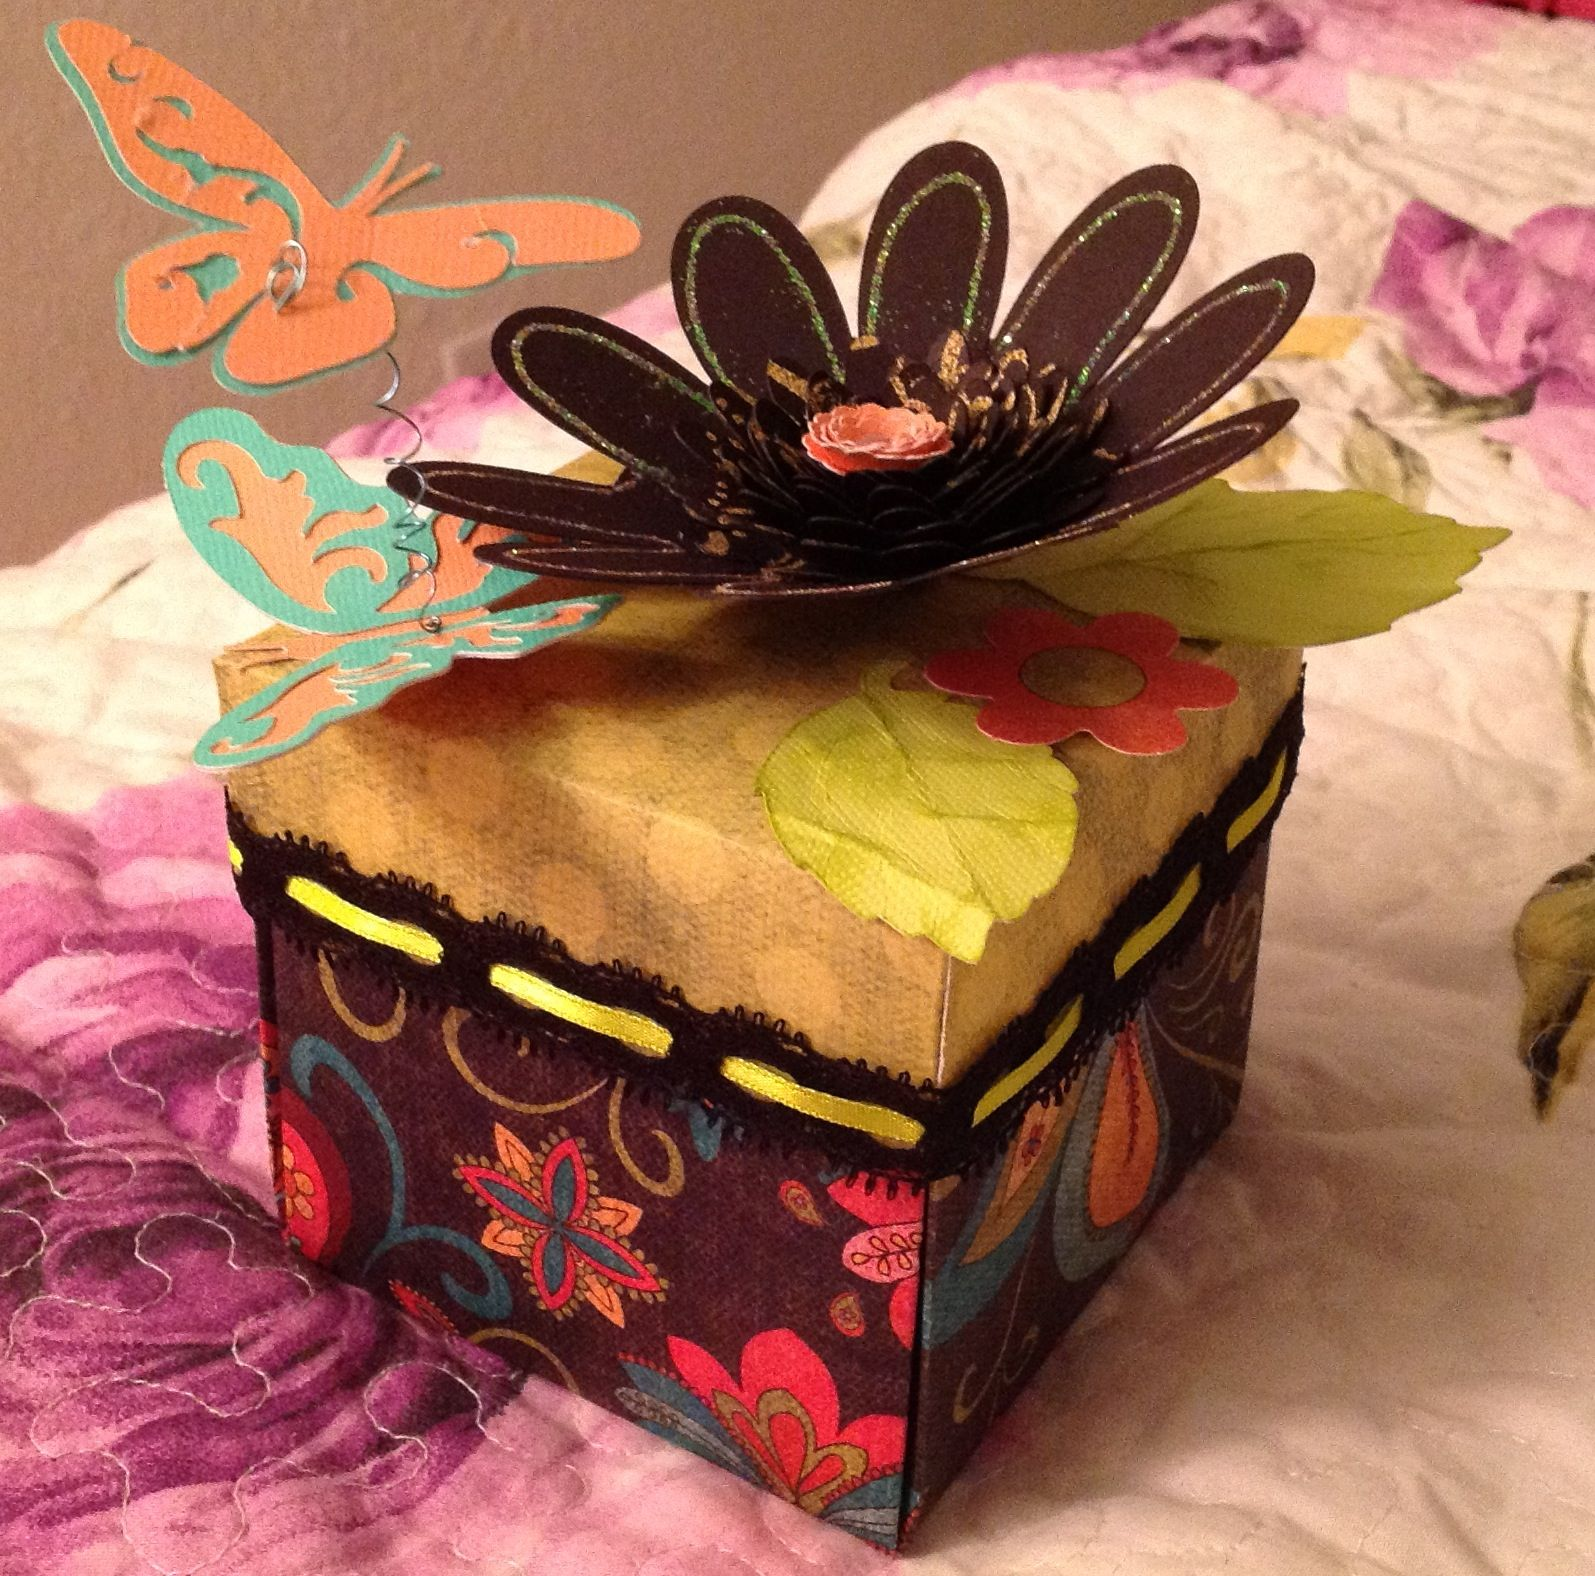 Explosion box with glitter, butterflies, flowers